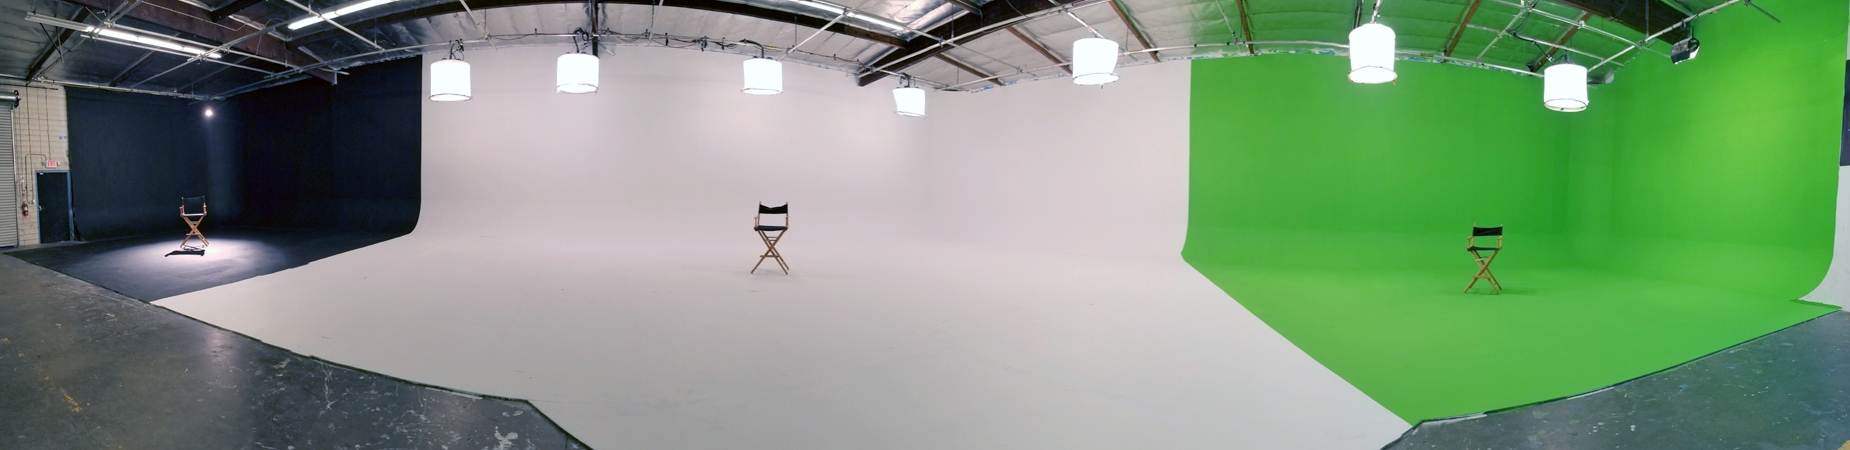 Full Studio for Video Shoot, Photo Shoot and Events